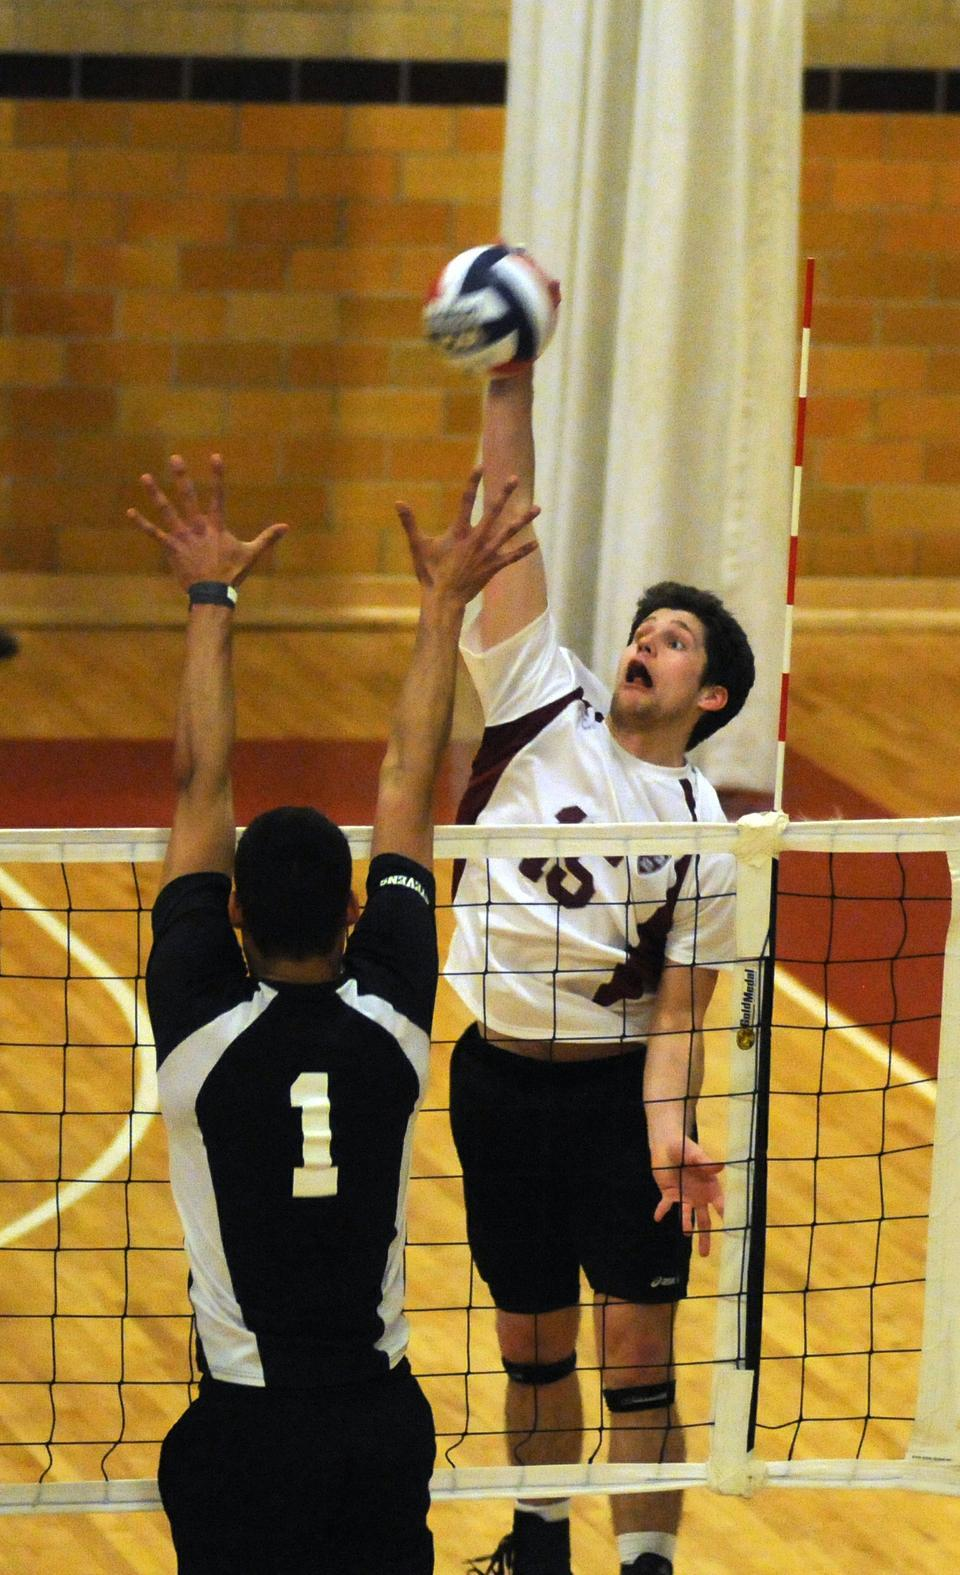 Freshman outside hitter Chris Gibbons, one of four rookie starters for the Crimson, was second on the squad with nine kills in a 3-0 win over Stevens at home Saturday night. Gibbons has picked up 61 kills on the year, helping spark Harvard to a 5-1 record—its best start since 2004.